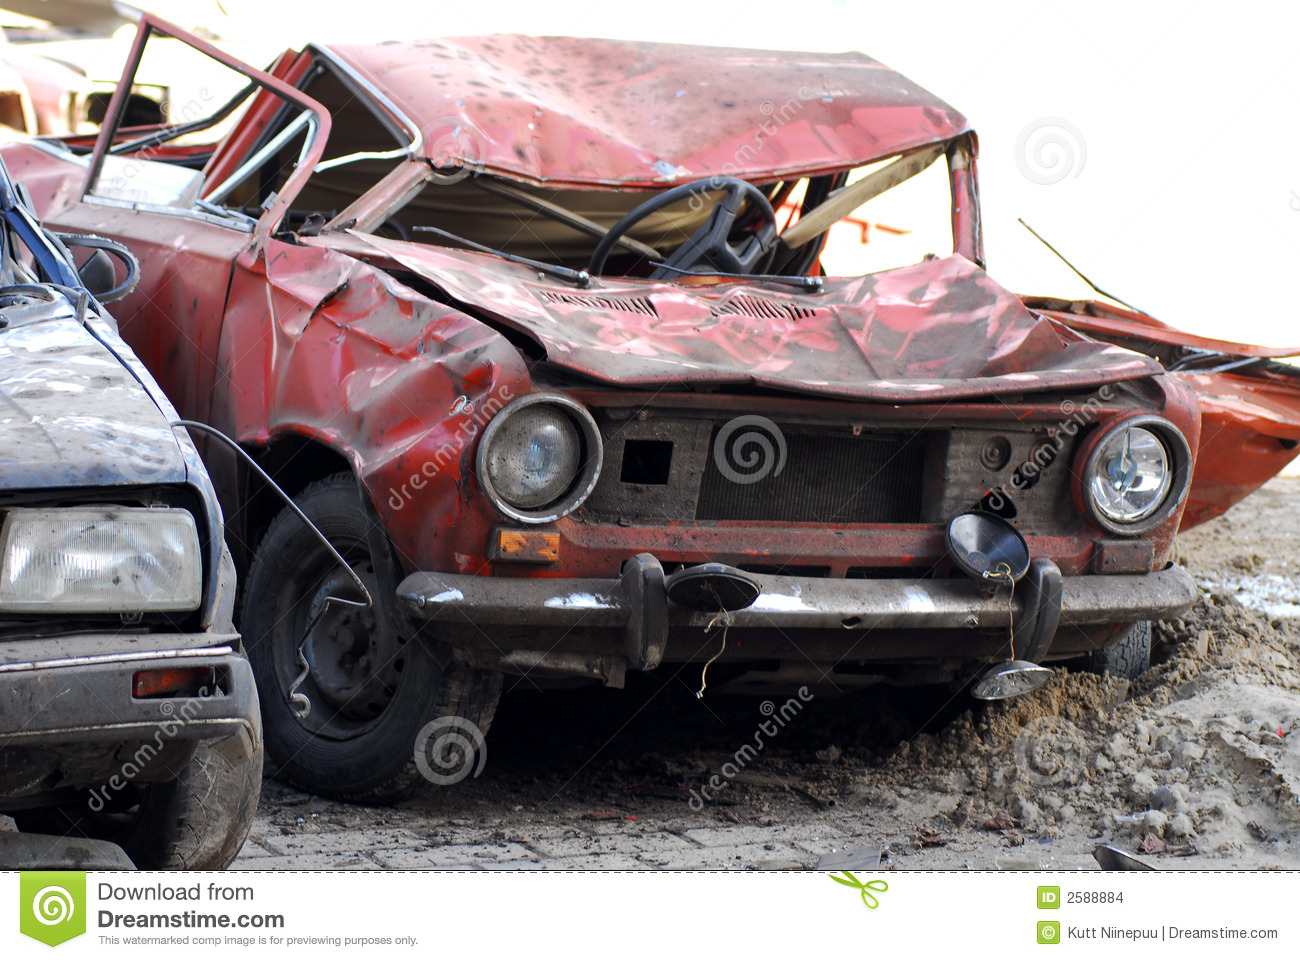 Demolished Cars In Junkyard Stock Photo - Image of wrecked, junks ...